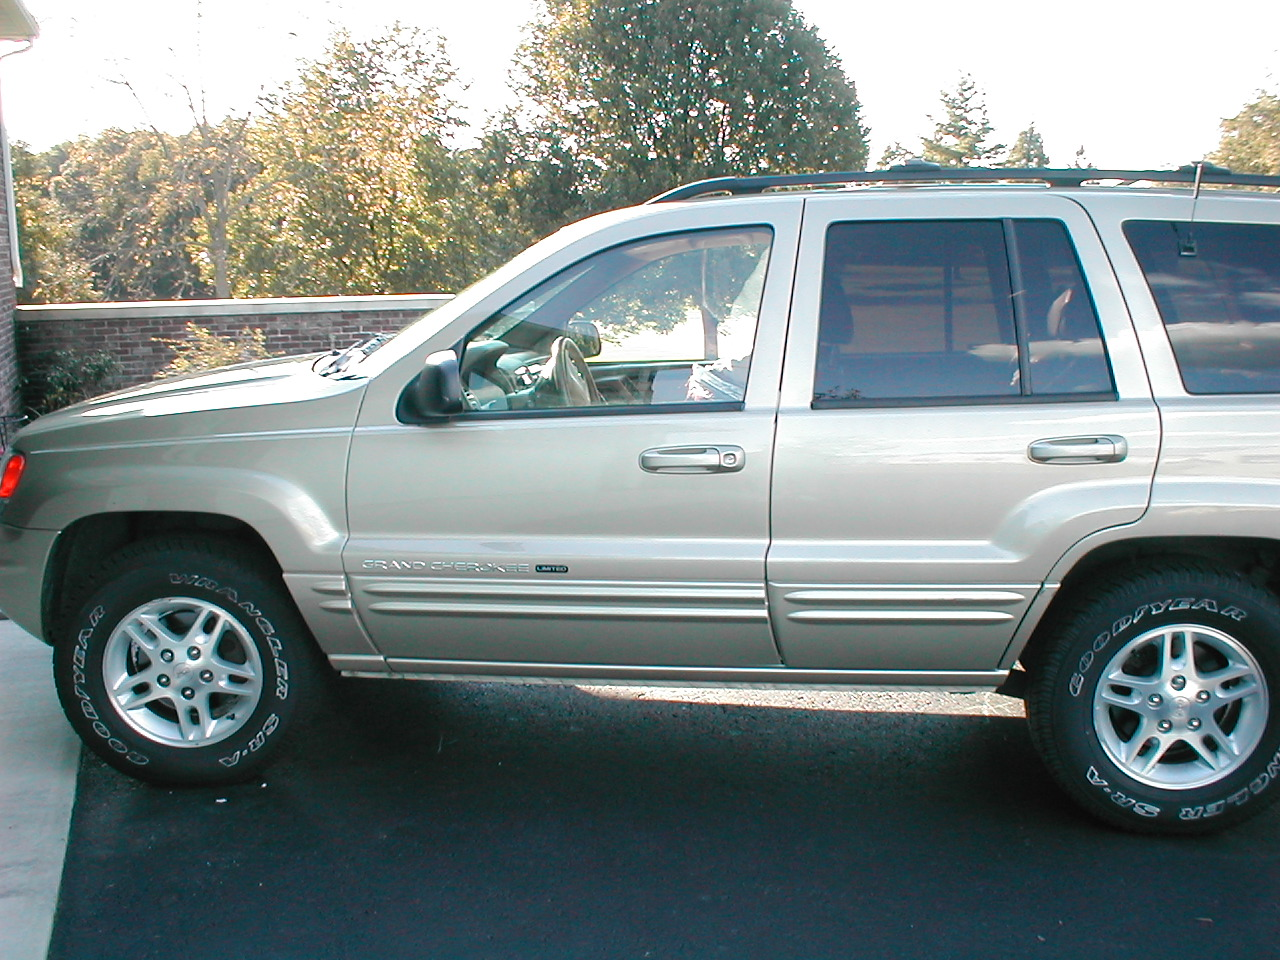 2000 jeep grand cherokee image 12 for Interieur jeep grand cherokee 2000